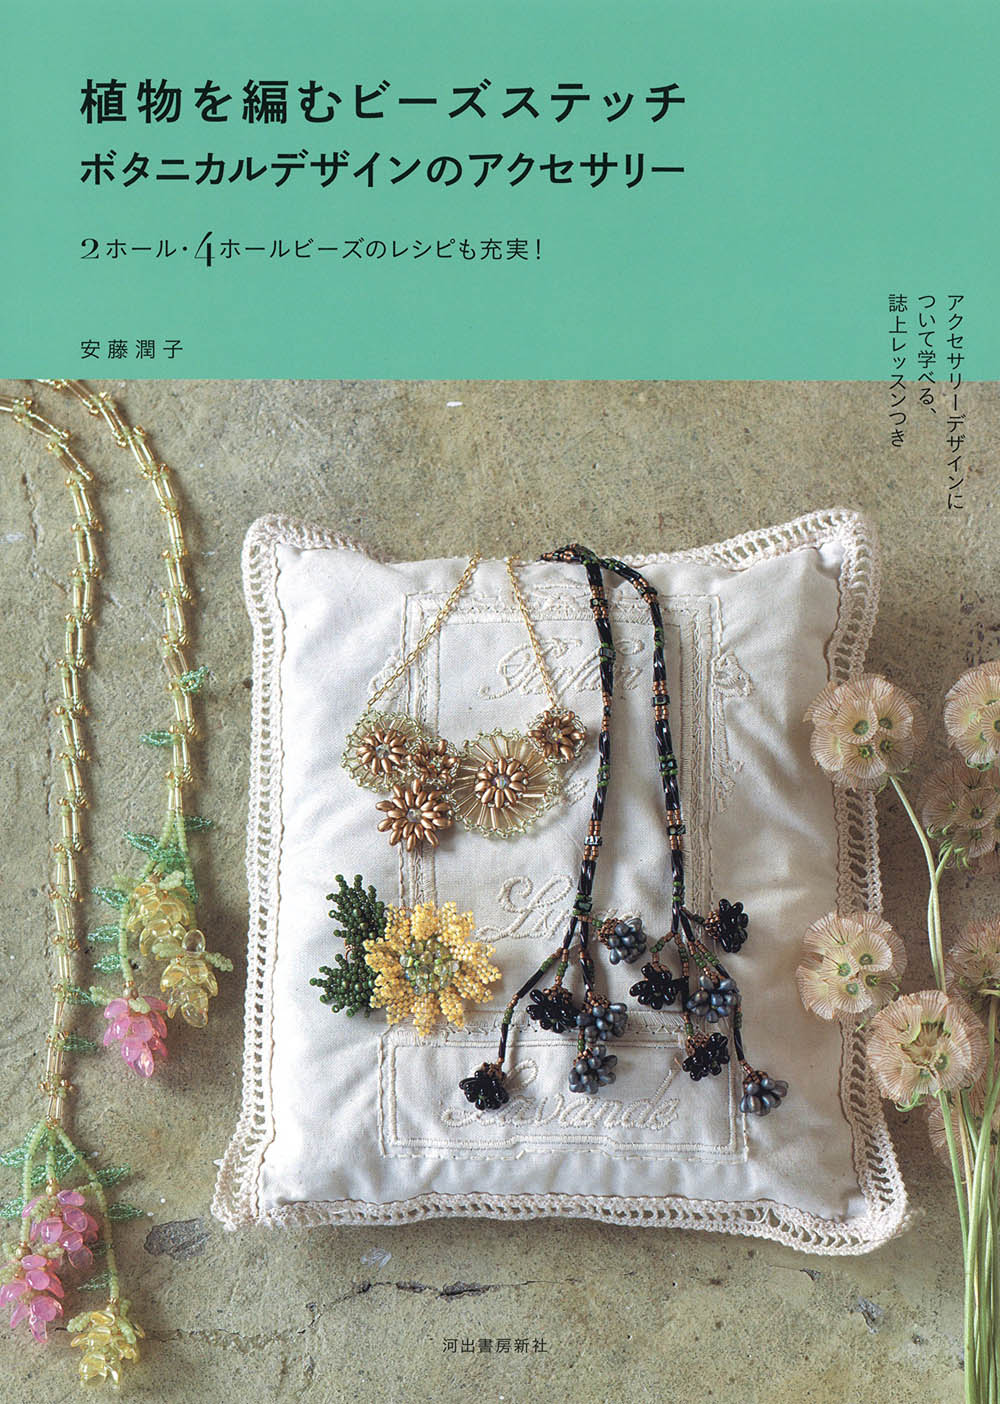 Botanical design of accessories: Beads stitch knitting